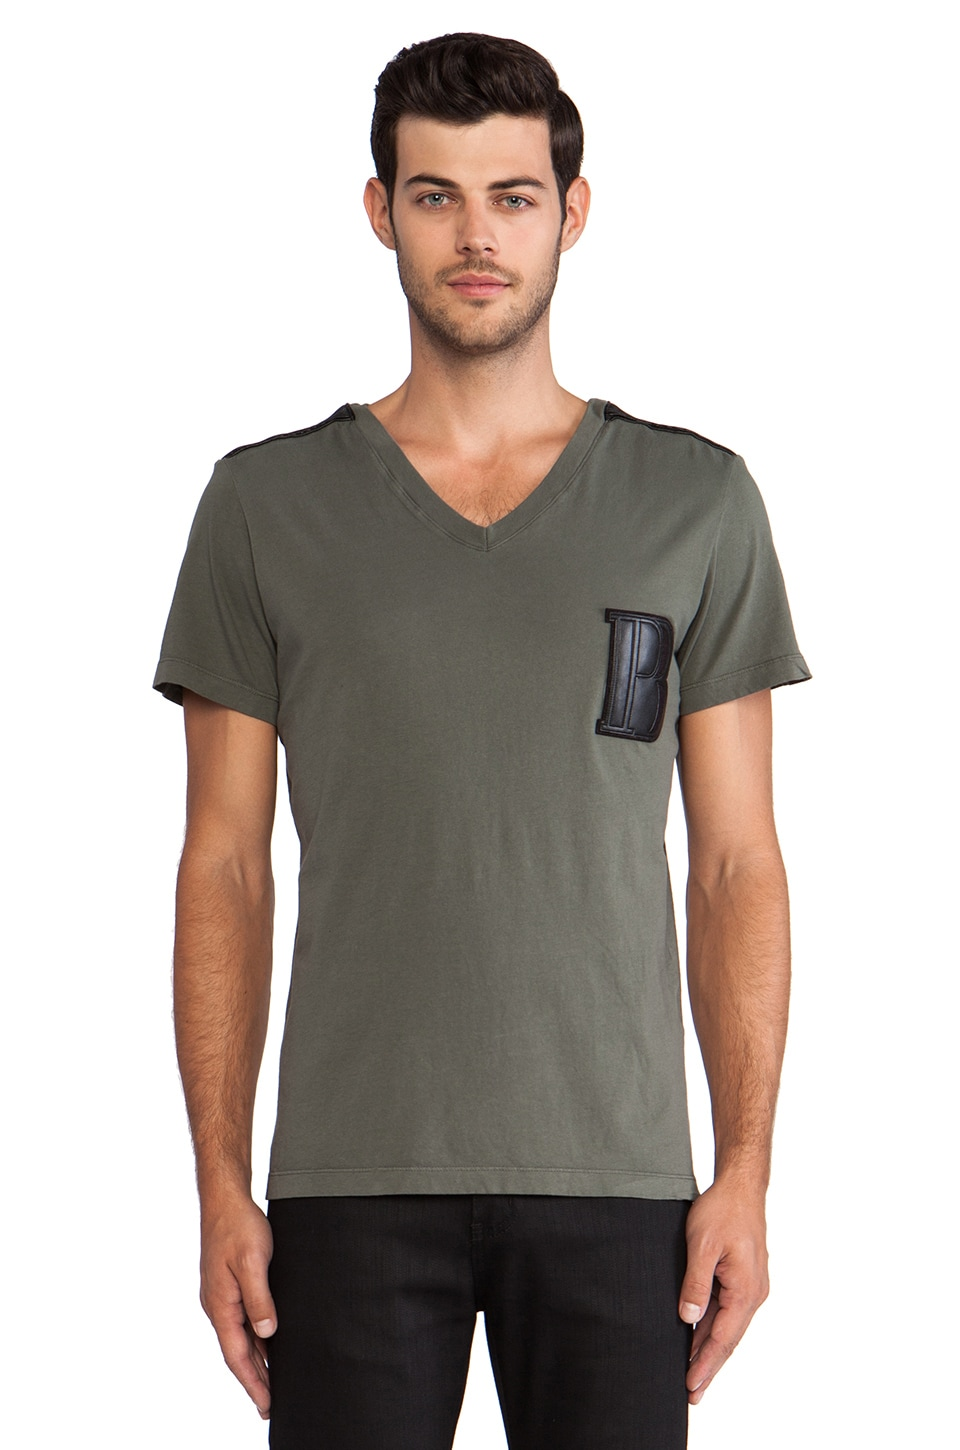 Pierre Balmain Tee in Military Green